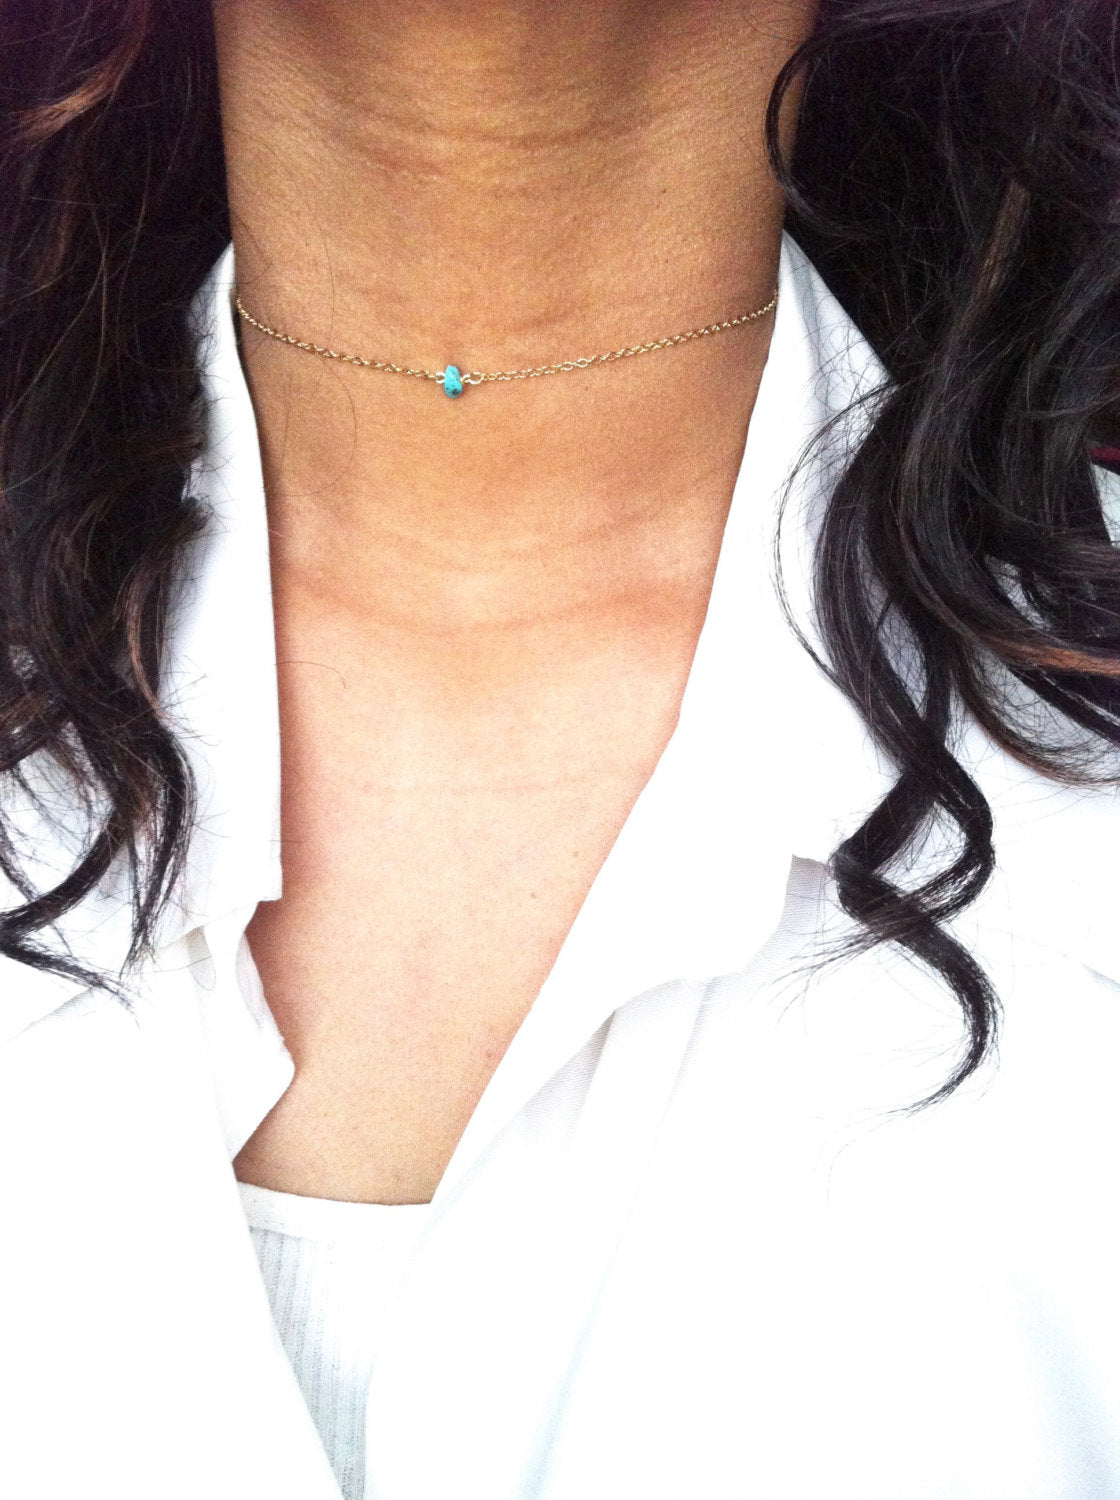 Simple Turquoise Thin Chain Choker Necklace | IB Jewelry